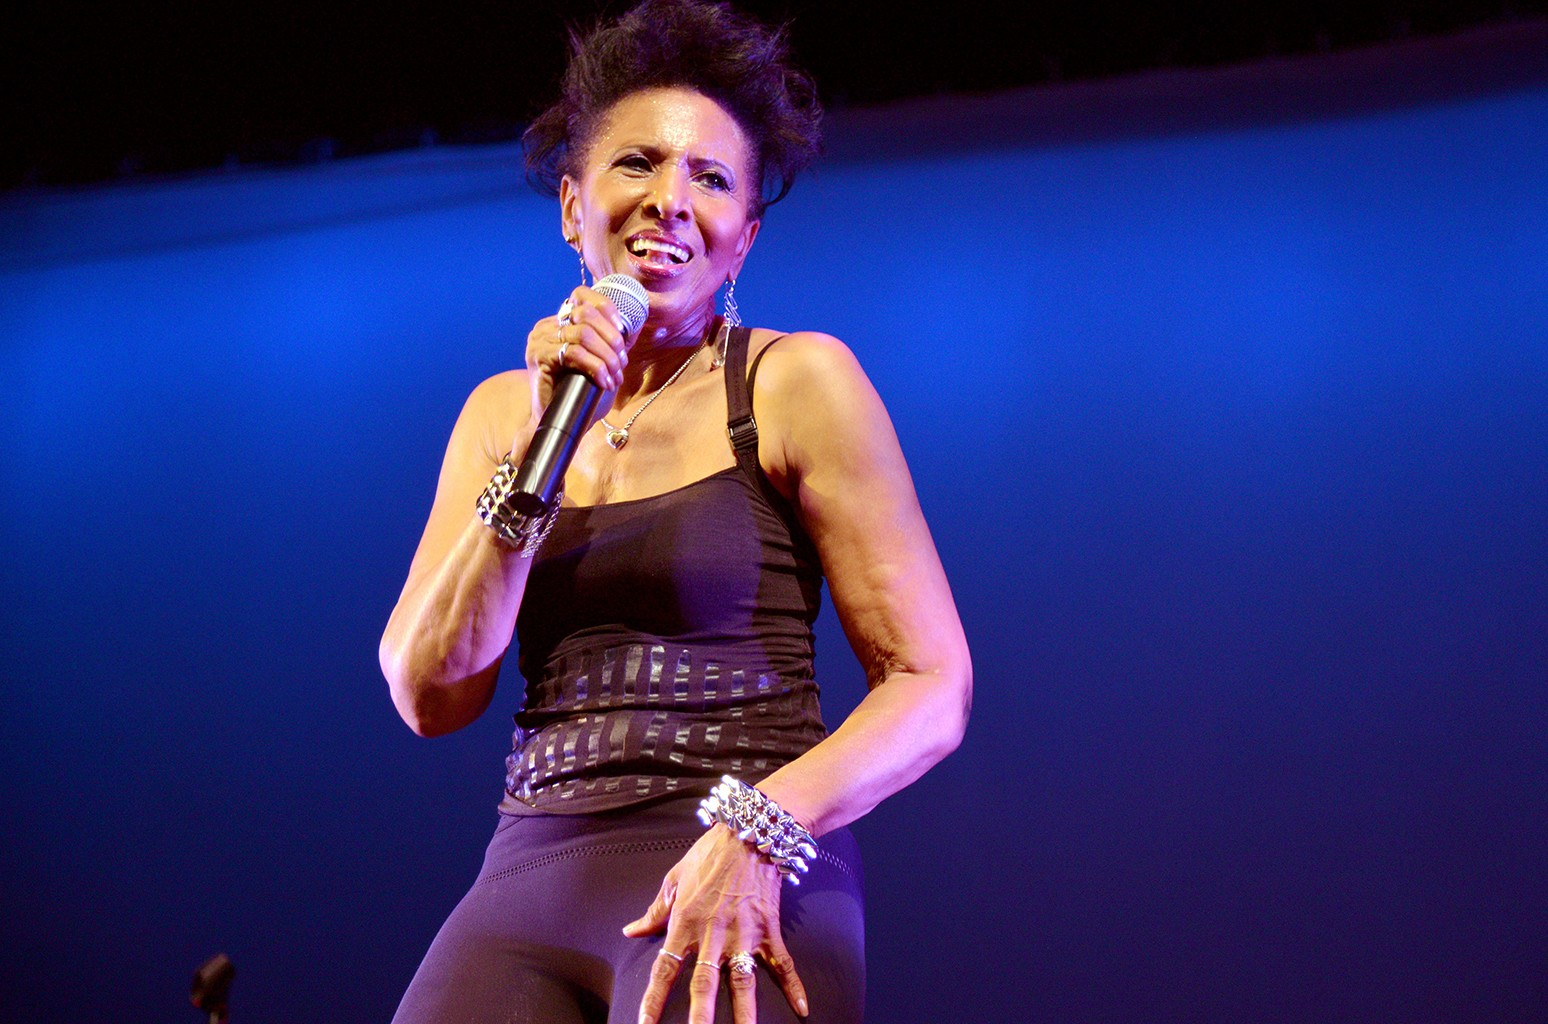 Nona Hendryx performs on stage during the Palm Springs Women's Jazz Festival on Oct. 10, 2015.